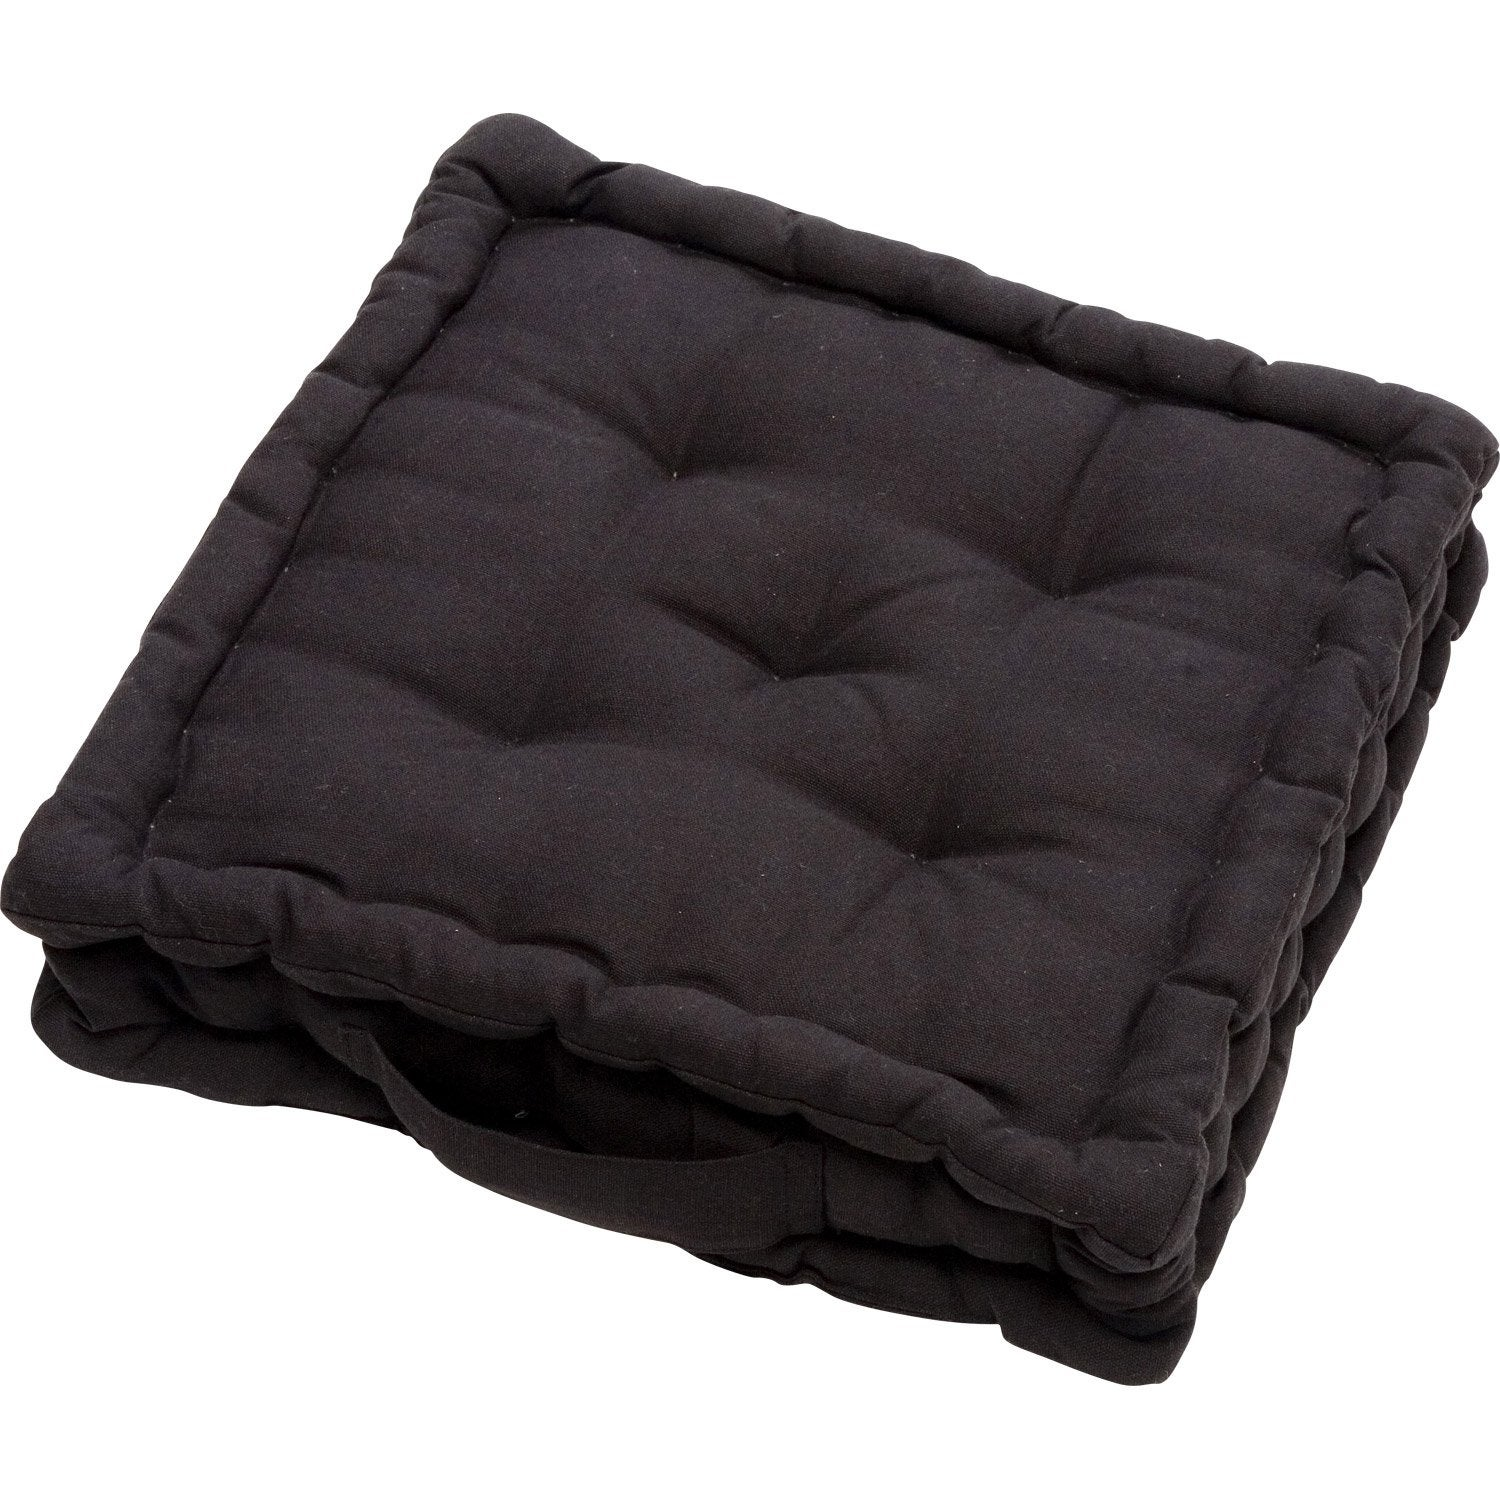 coussin de sol cl a inspire noir noir n 0 x x cm leroy merlin. Black Bedroom Furniture Sets. Home Design Ideas